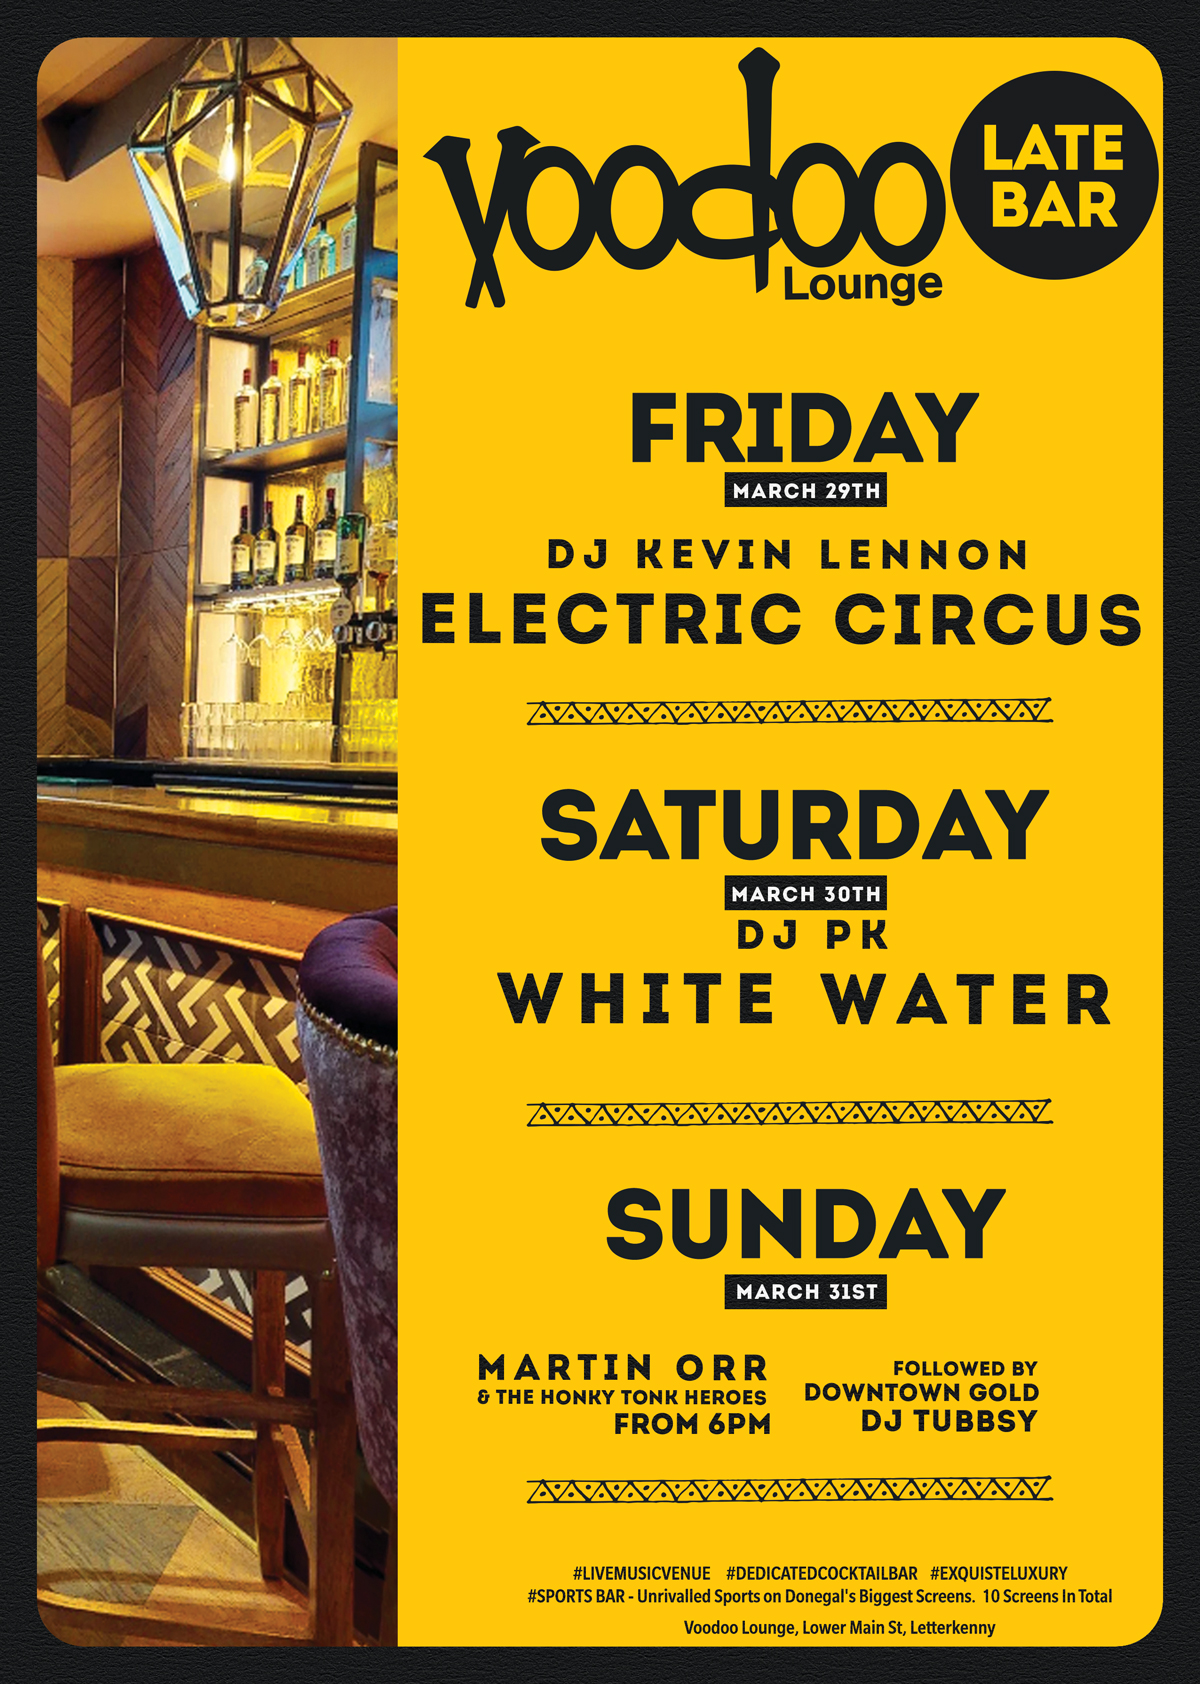 voodoo-lounge-weekend---march-29---31-2019.jpg